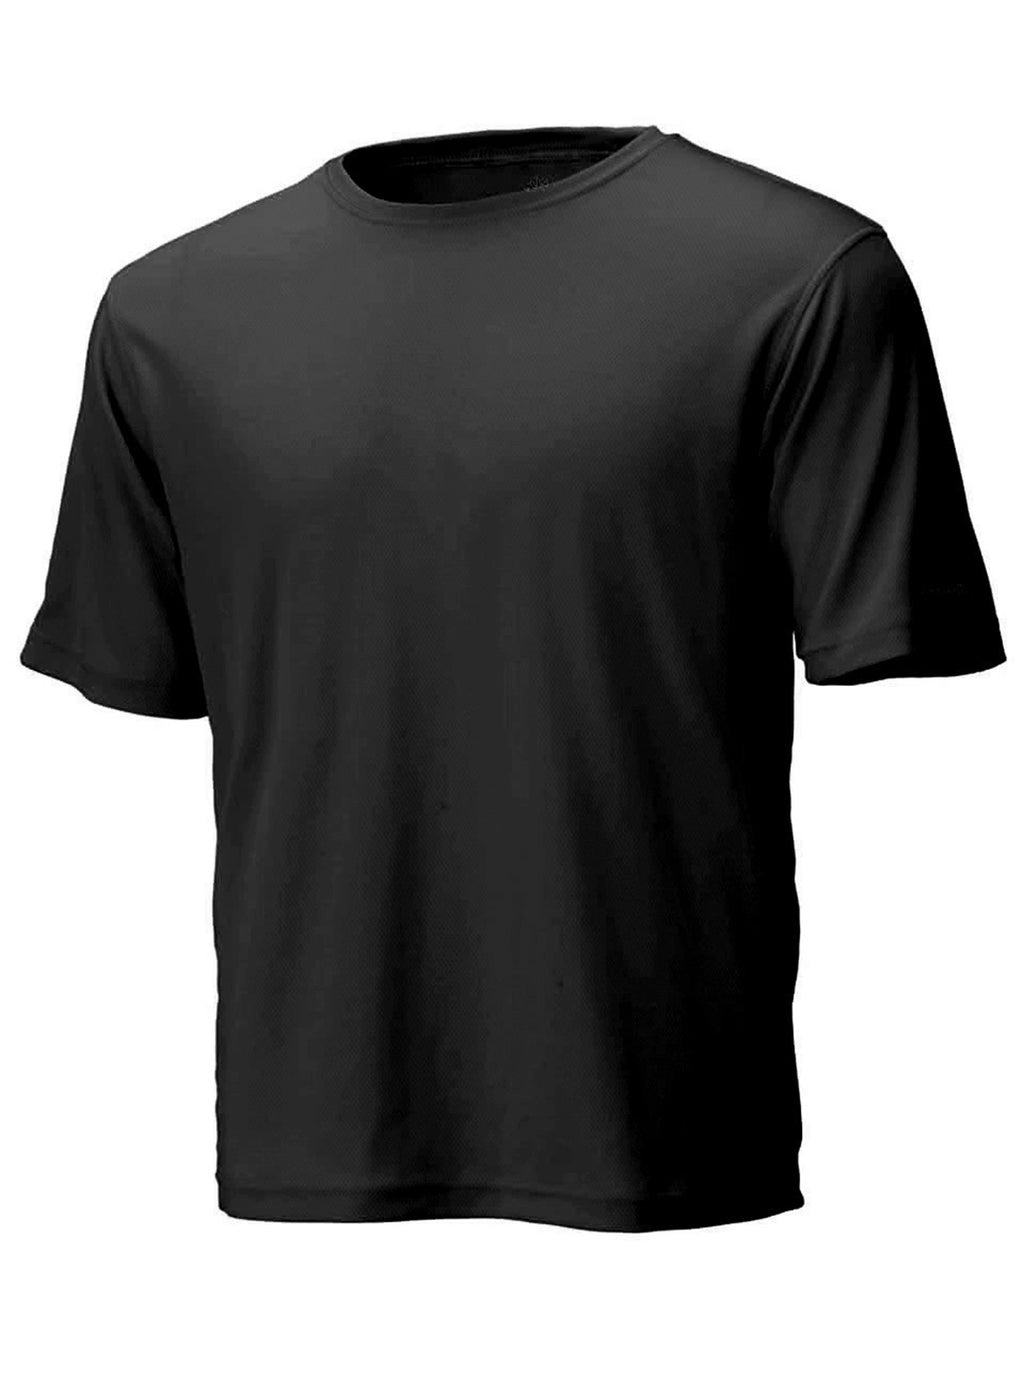 Black Unisex Short Sleeve Race Tee